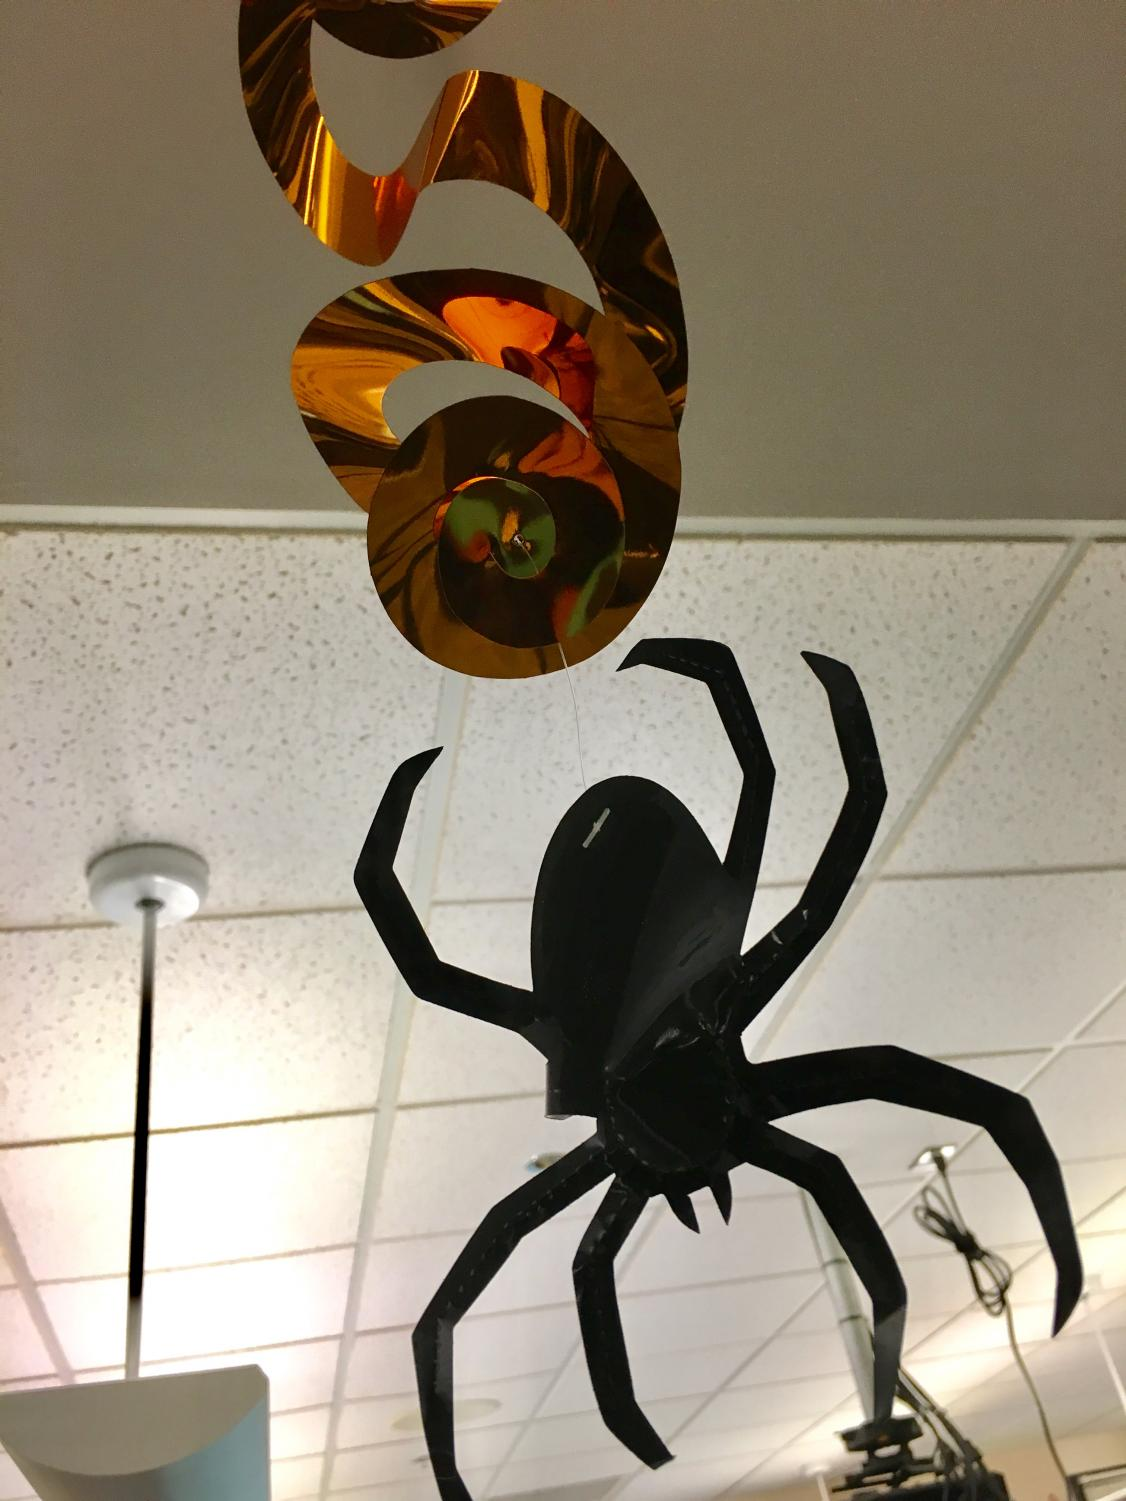 Decorations are out for Halloween. Students share their plans for Halloween night.